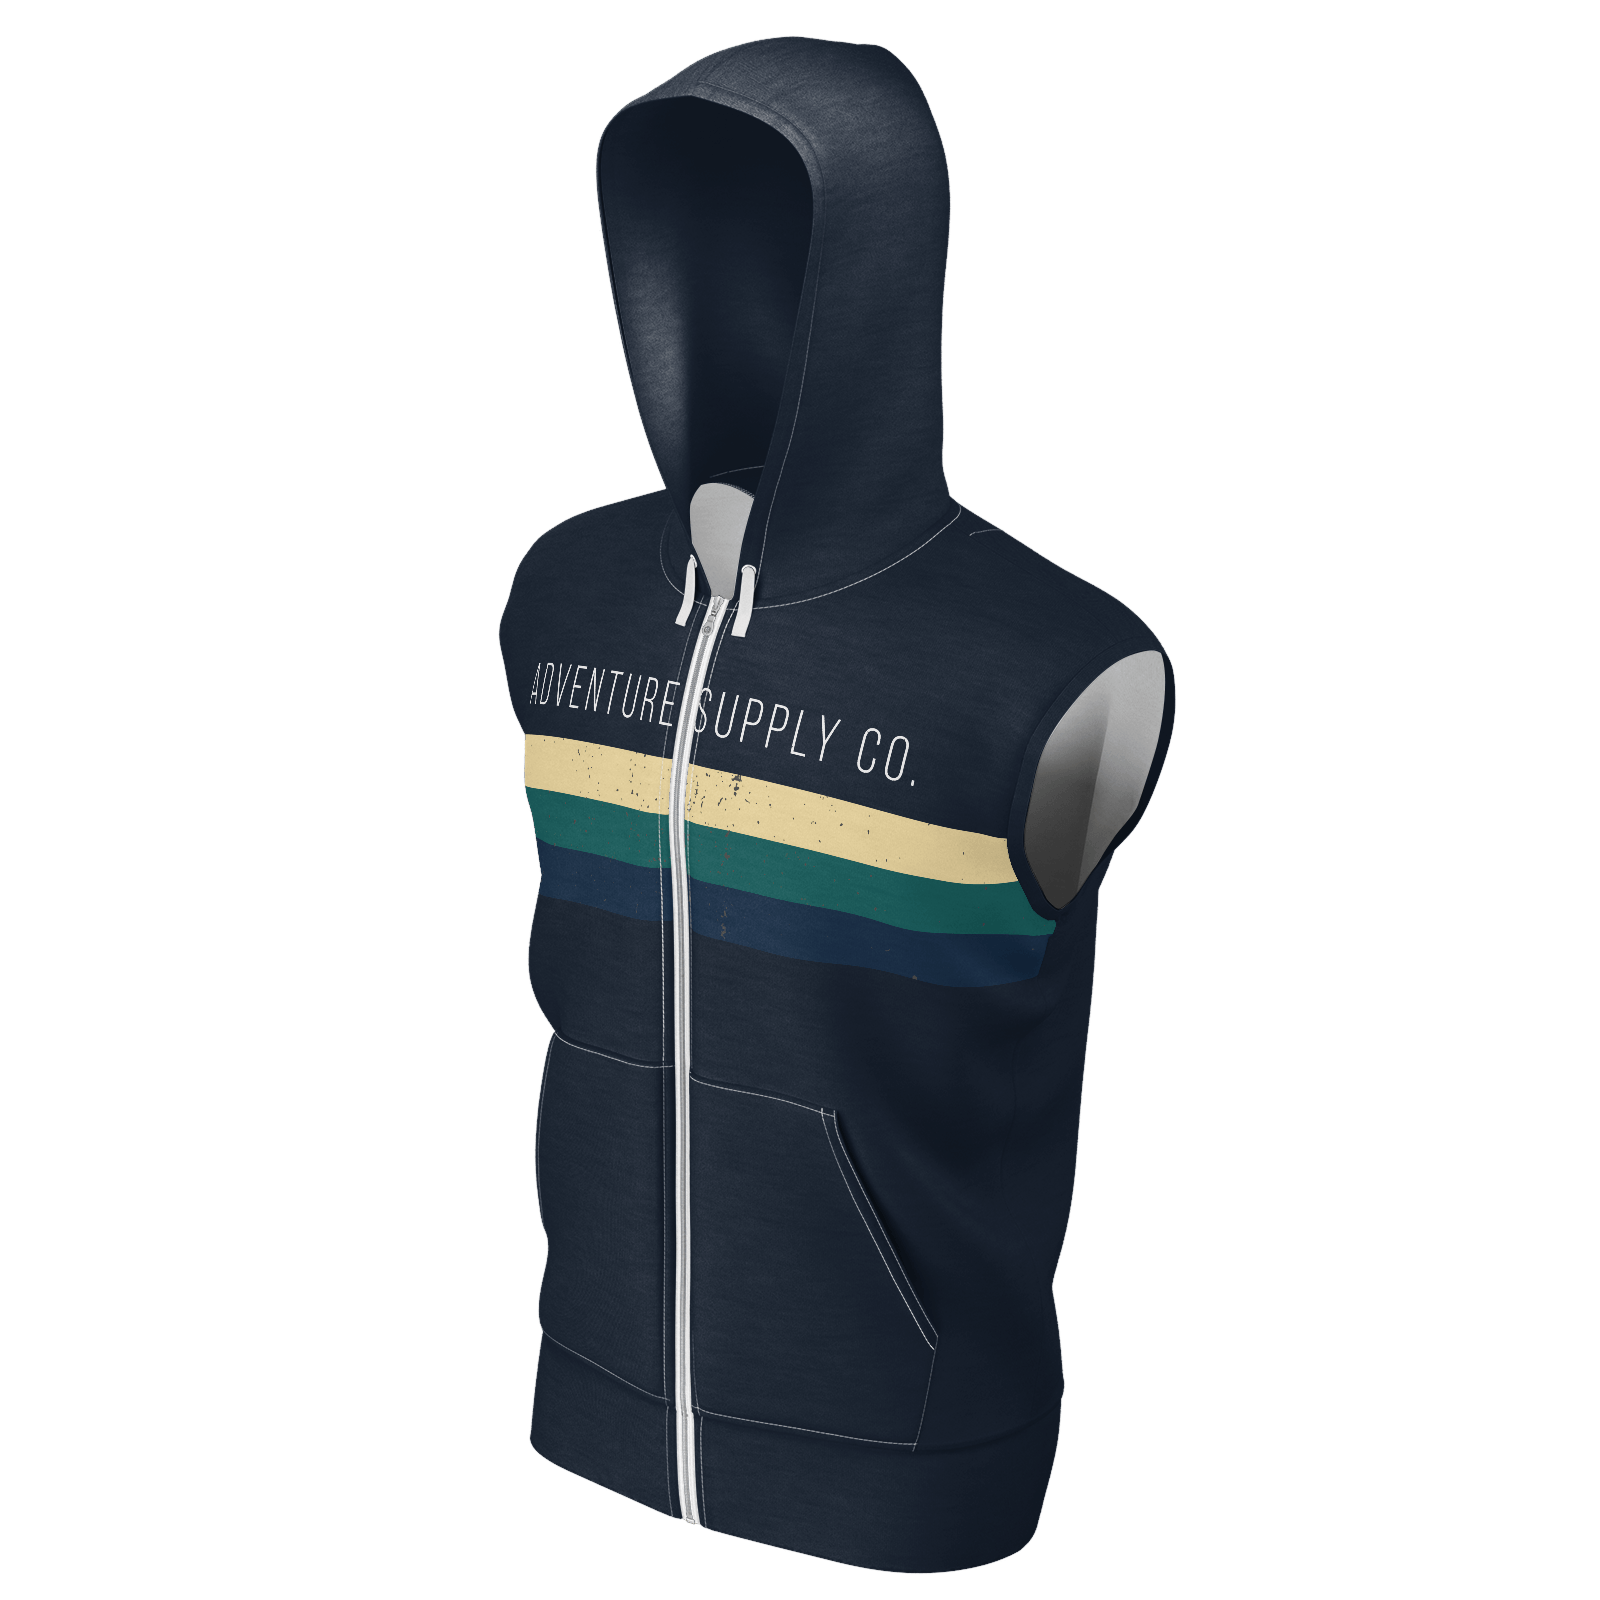 Men's Adventure Supply Co. Navy w/White Sustainable Sleeveless Lake Tahoe Zip-Up Hoodie - Find Your Coast Supply Co.